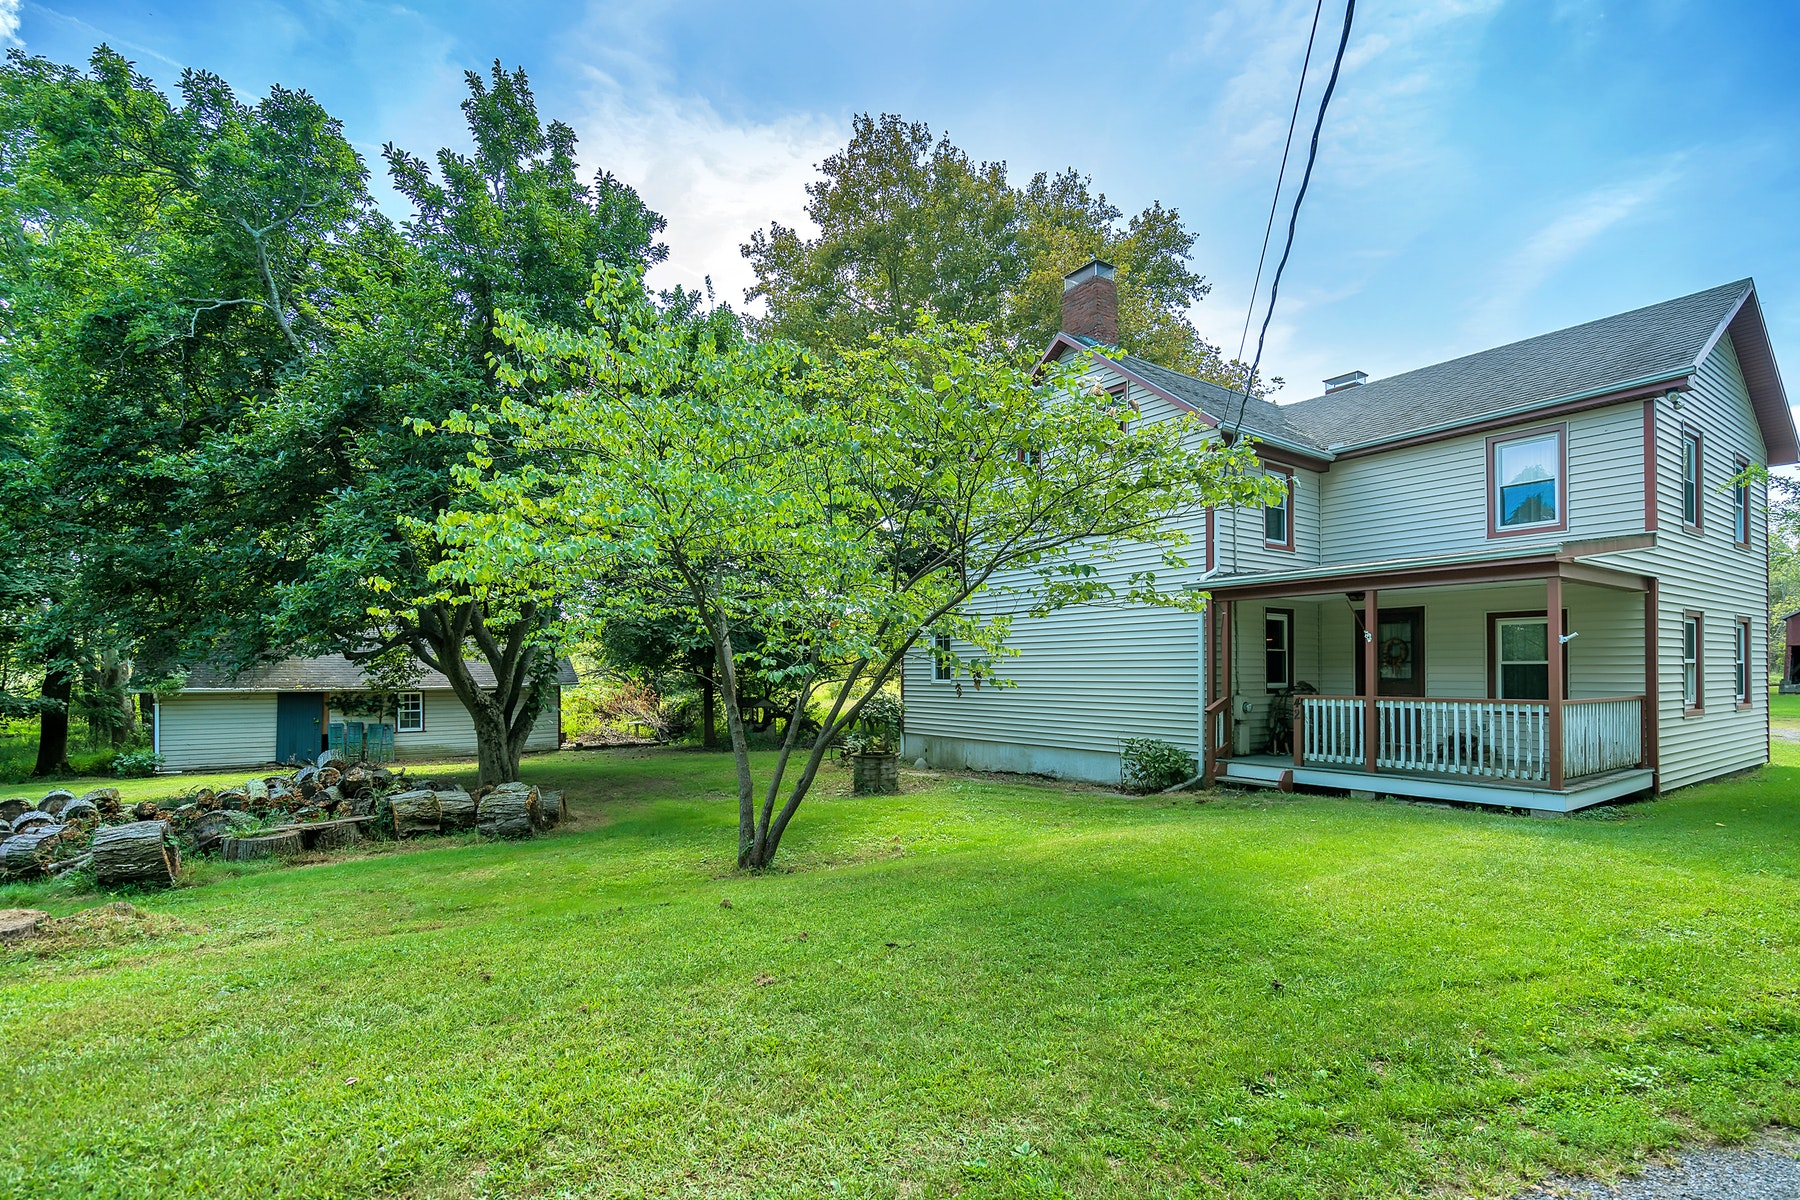 Single Family Home for Sale at 42 Joe Ent Road Franklin Township, New Jersey 08822 United States